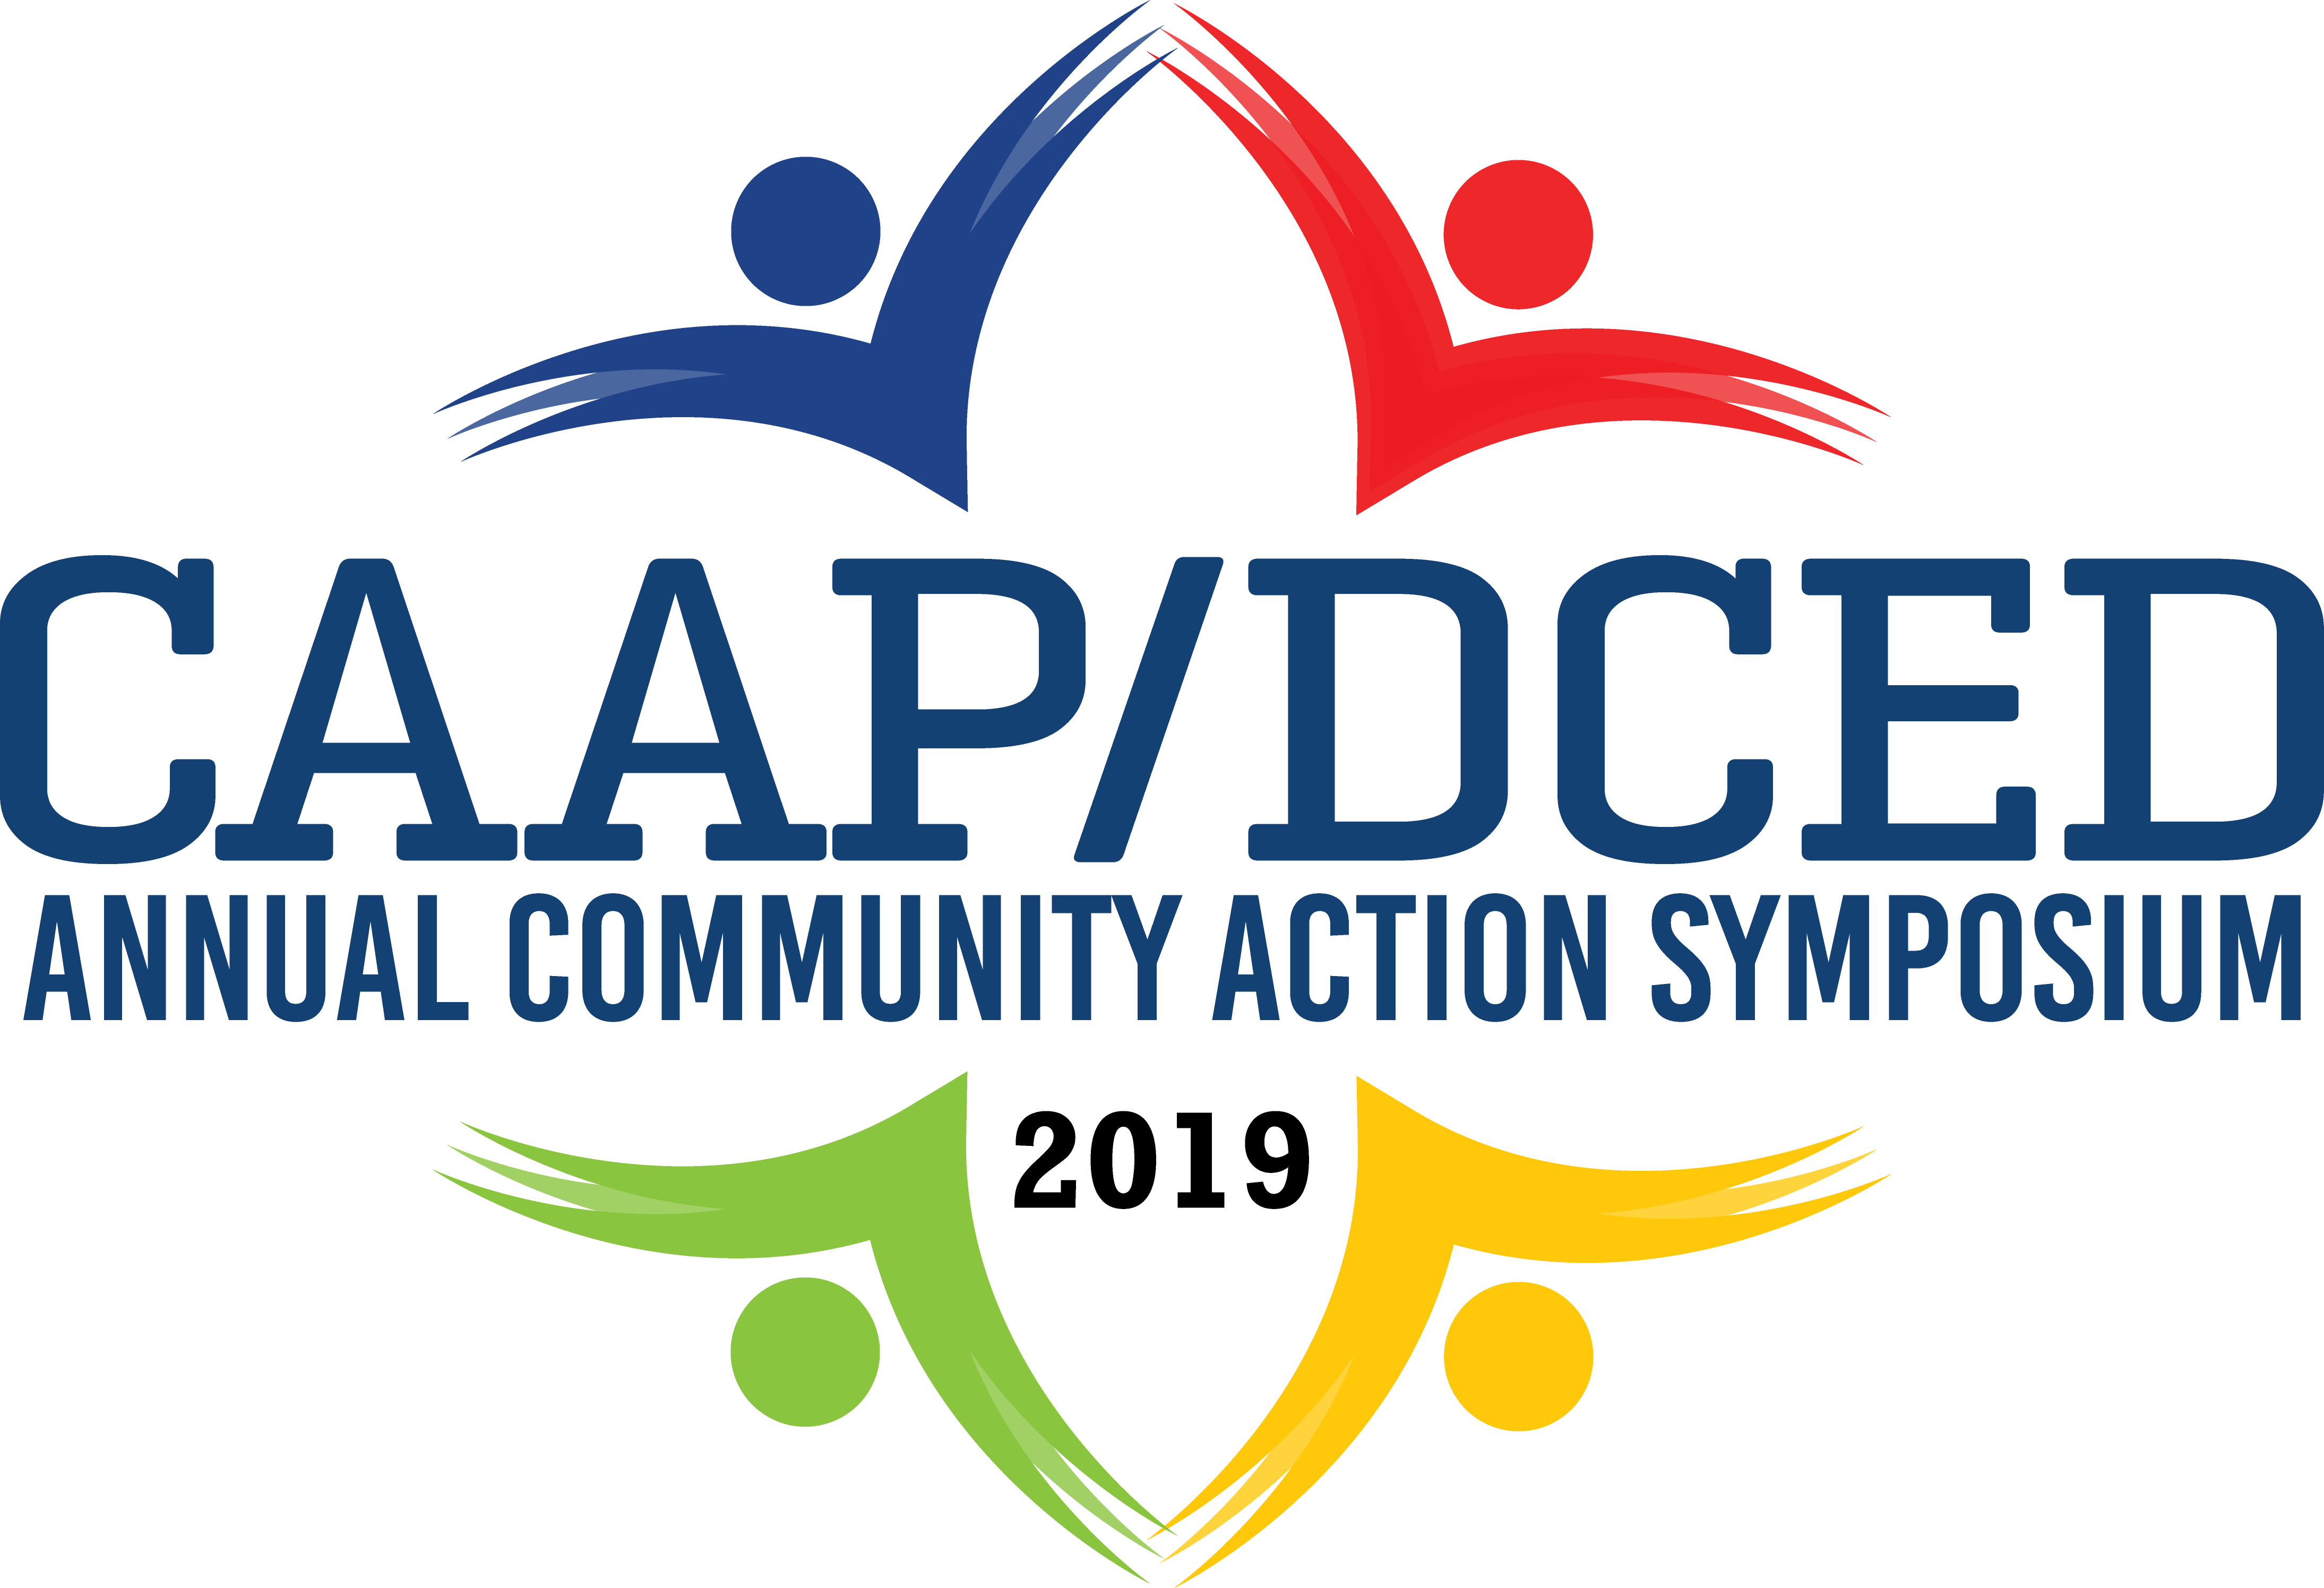 CAAP/DCED Annual Community Action Symposium